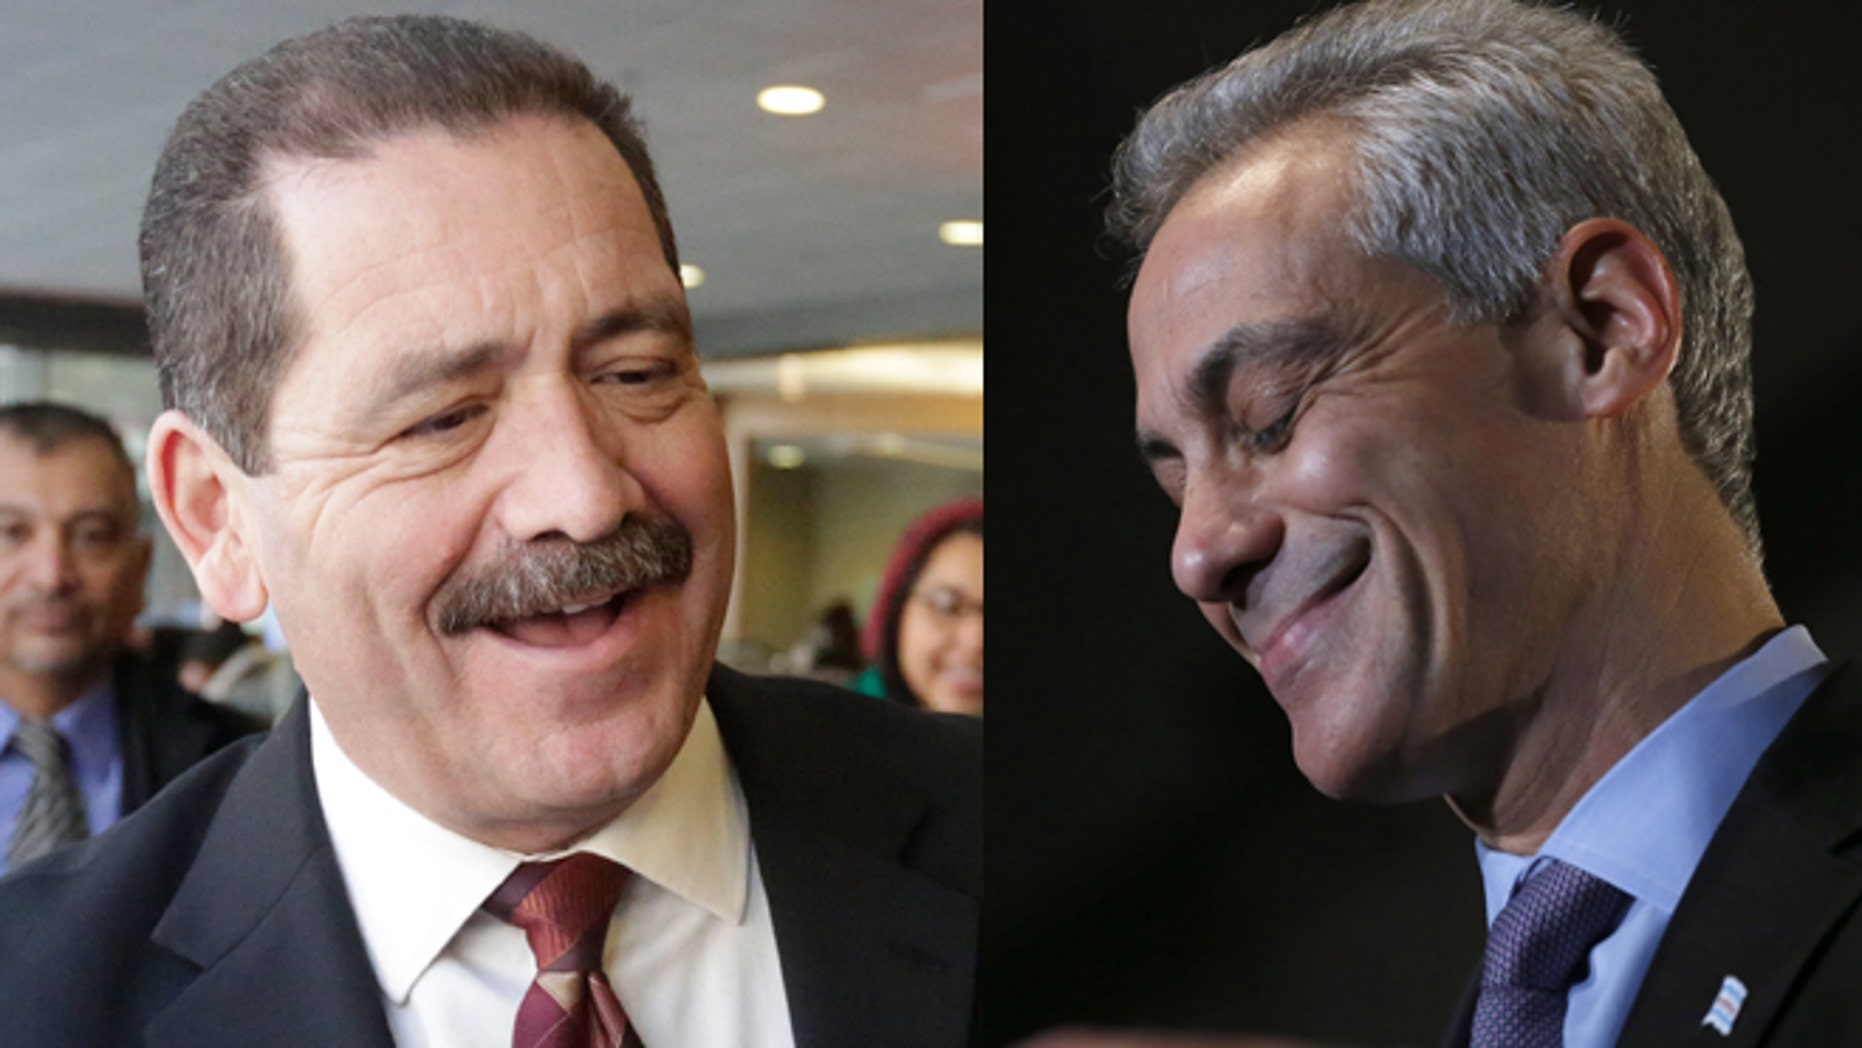 """Left: Chicago mayoral candidate, Cook County Commissioner Jesus """"Chuy"""" Garcia on Monday, Feb. 23, 2015, in Chicago.(AP Photo/M. Spencer Green) Right: Chicago Mayor Rahm Emanuel on Tuesday, Feb. 24, 2015, in Chicago. (AP Photo/Charles Rex Arbogast)"""